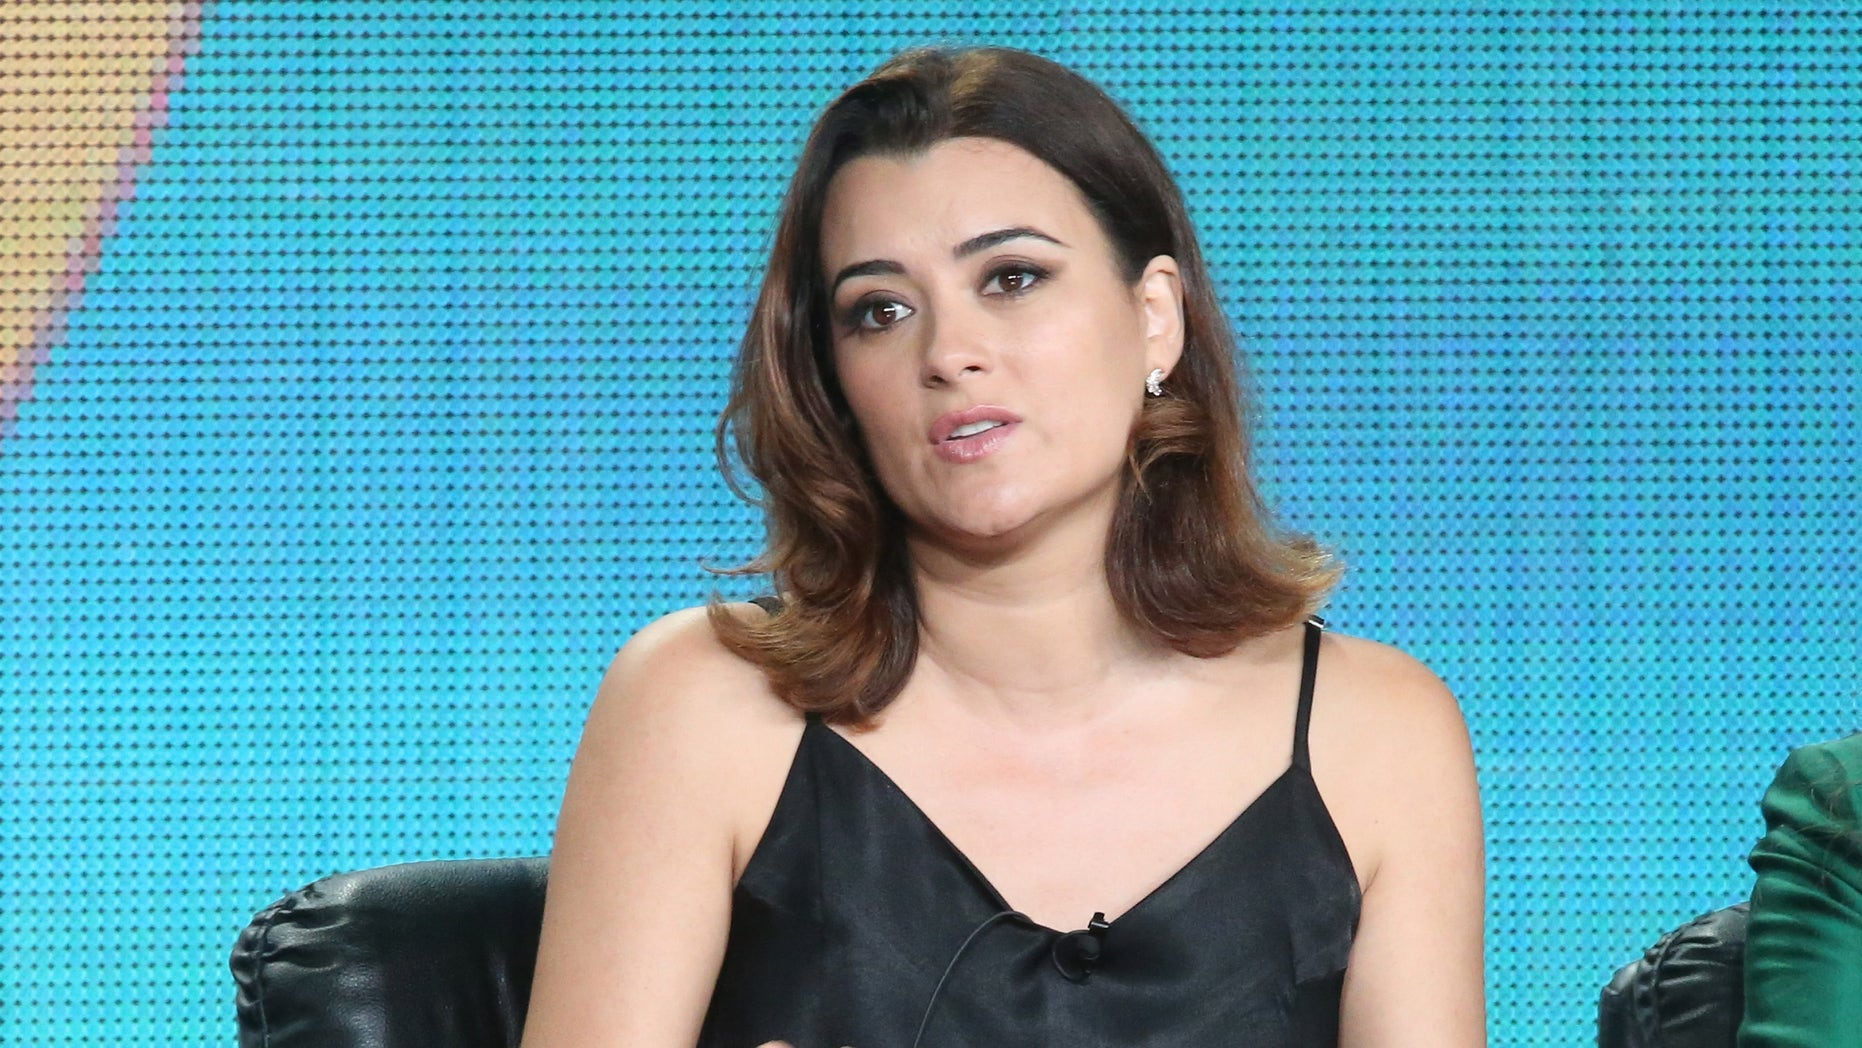 PASADENA, CA - JANUARY 12:  Actress Cote de Pablo speaks onstage during 'The Dovekeepers ' panel as part of  the CBS/Showtime 2015 Winter Television Critics Association press tour at the Langham Huntington Hotel & Spa on January 12, 2015 in Pasadena, California.  (Photo by Frederick M. Brown/Getty Images)